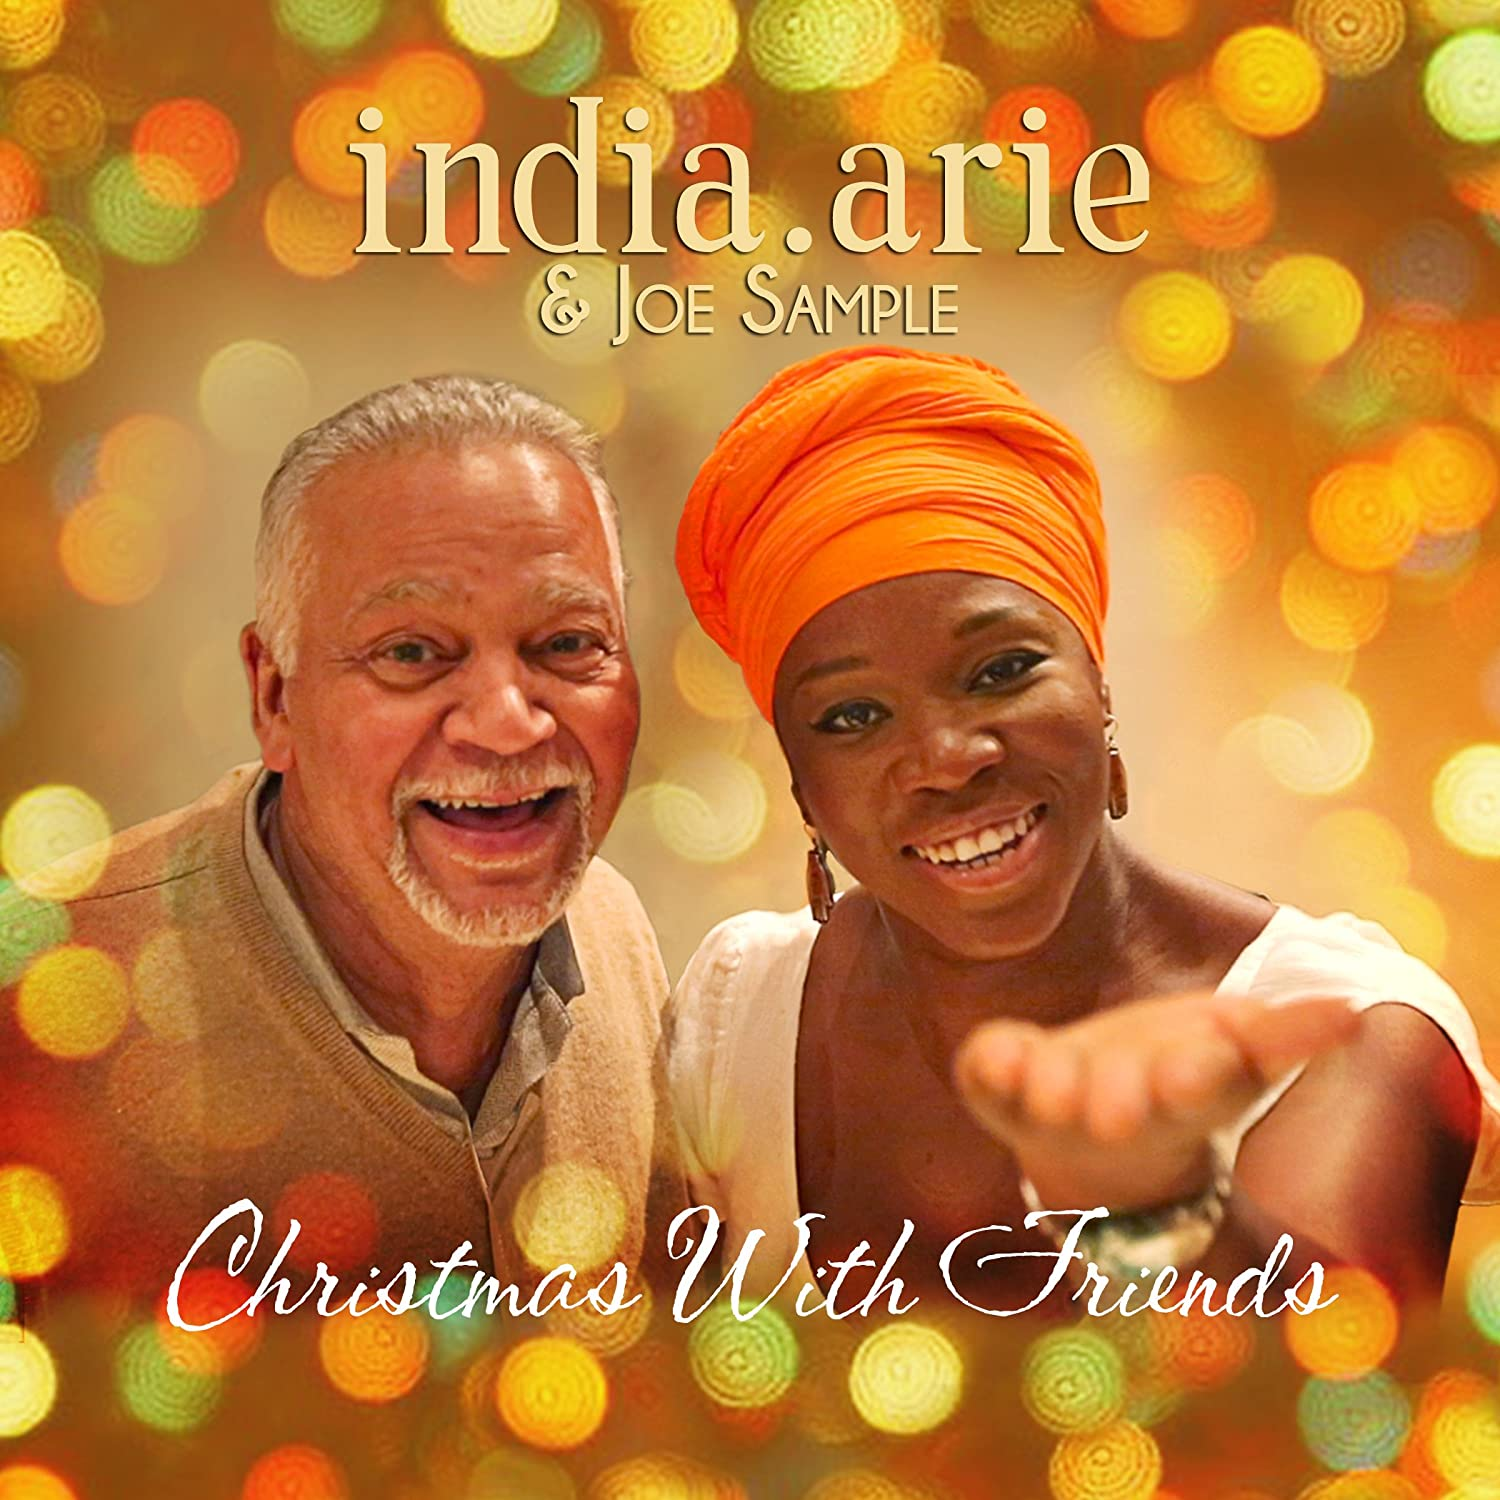 India Arie - Christmas With Friends - Amazon.com Music